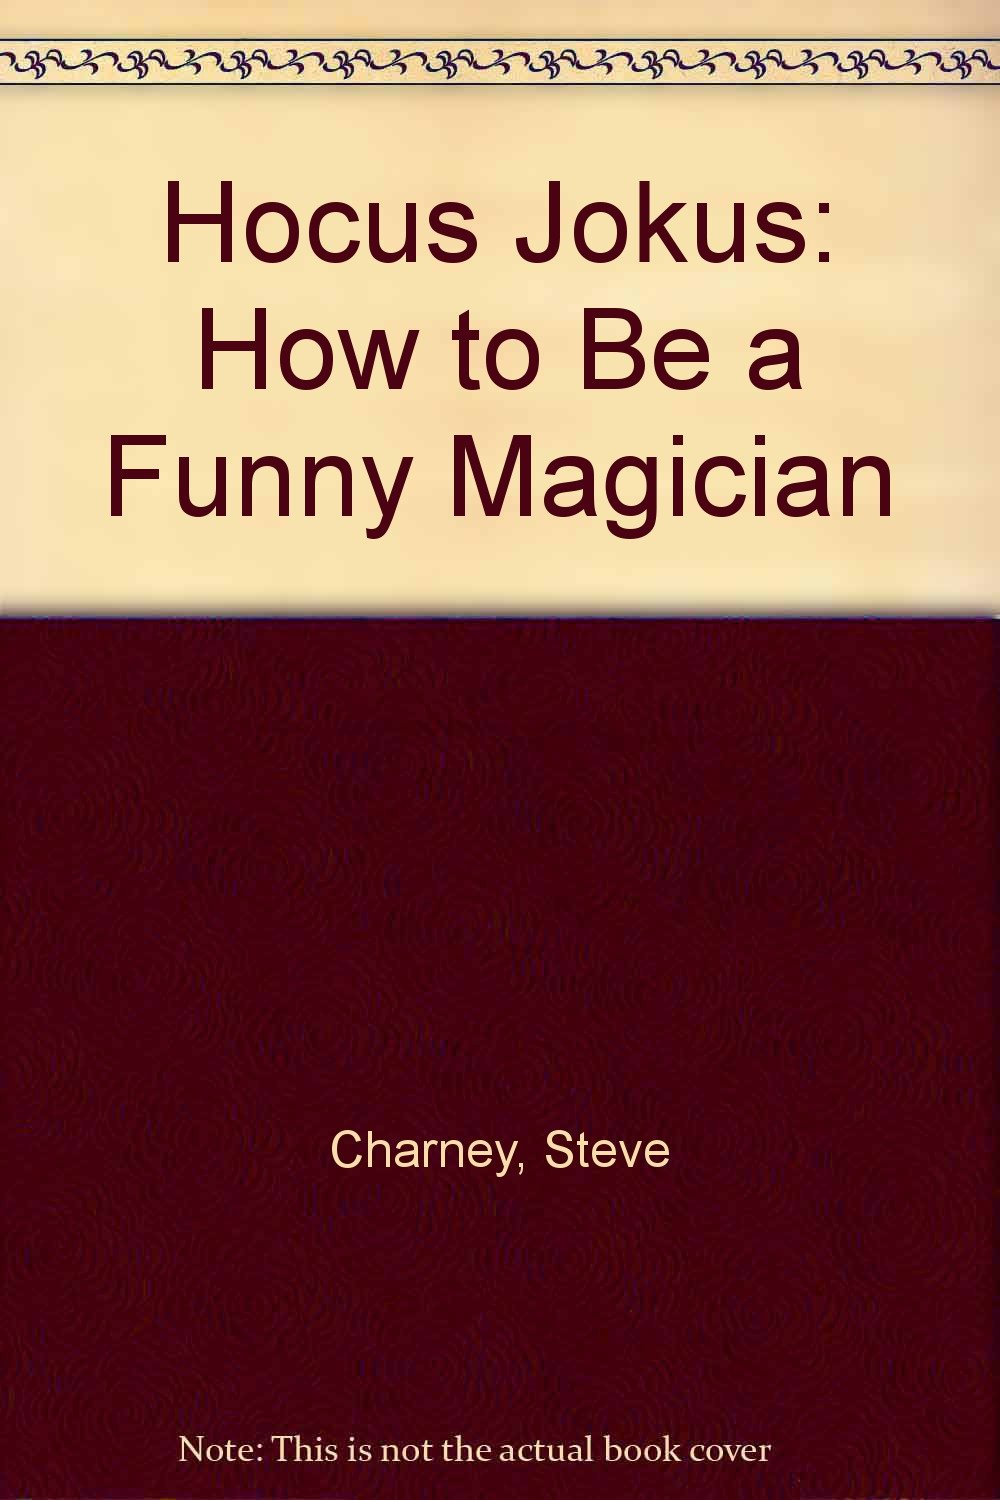 Hocus Jokus: How to Be a Funny Magician